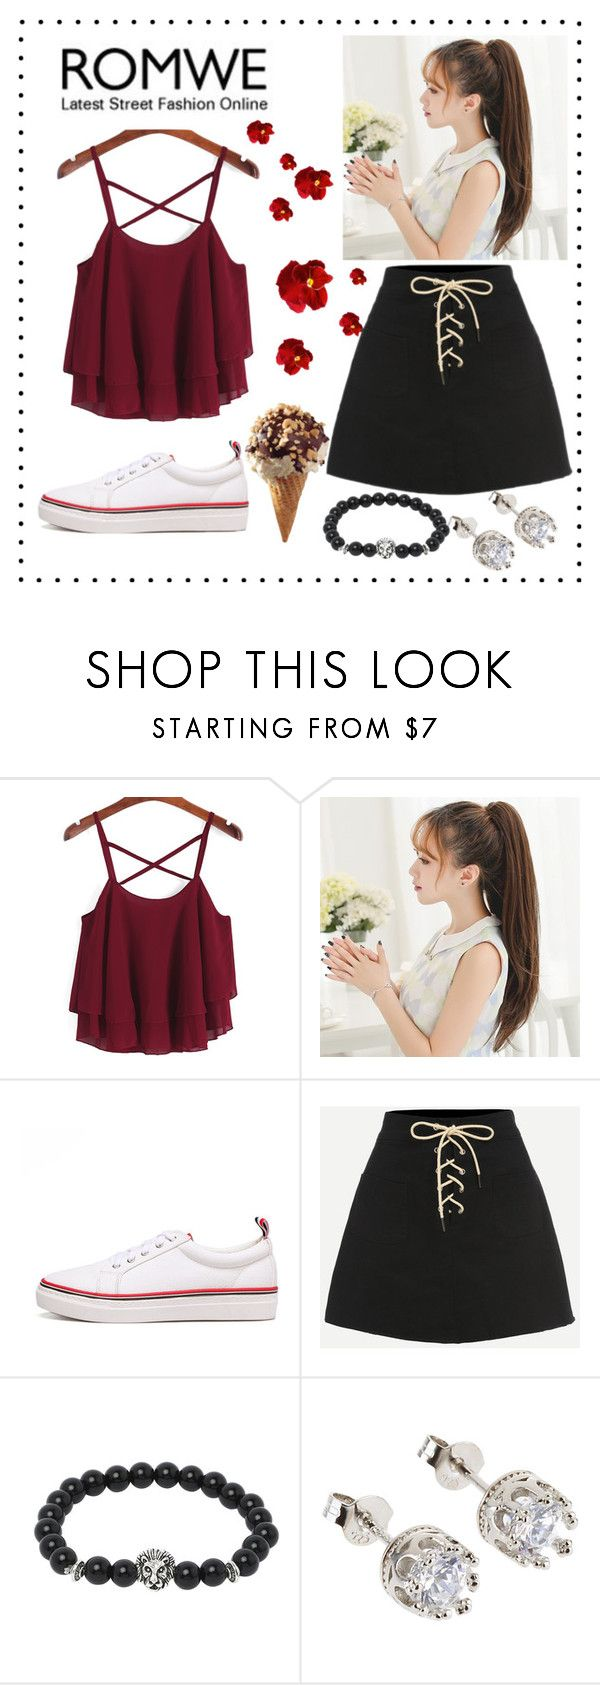 """""""ROMWE"""" by faavequeen ❤ liked on Polyvore"""